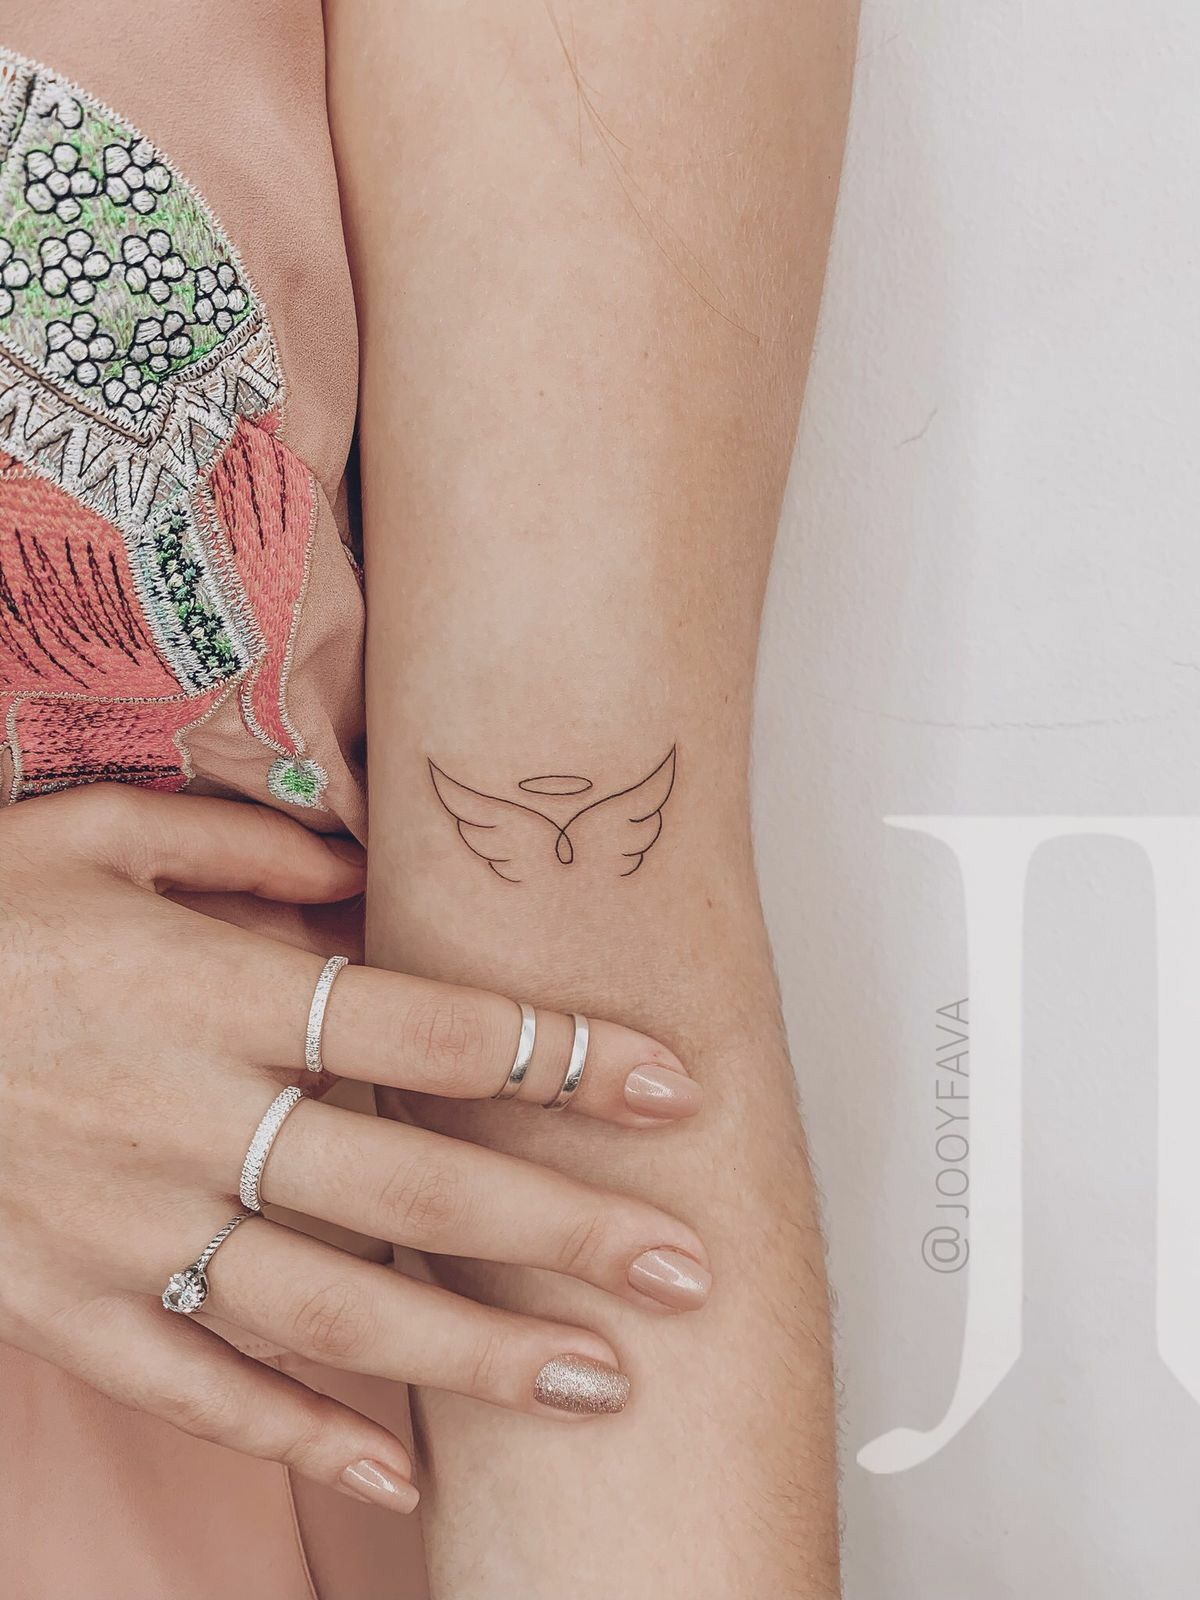 TATTOO –   – #girltattoo #tattoo #tattooformenmeaningful #tattooformenonchest